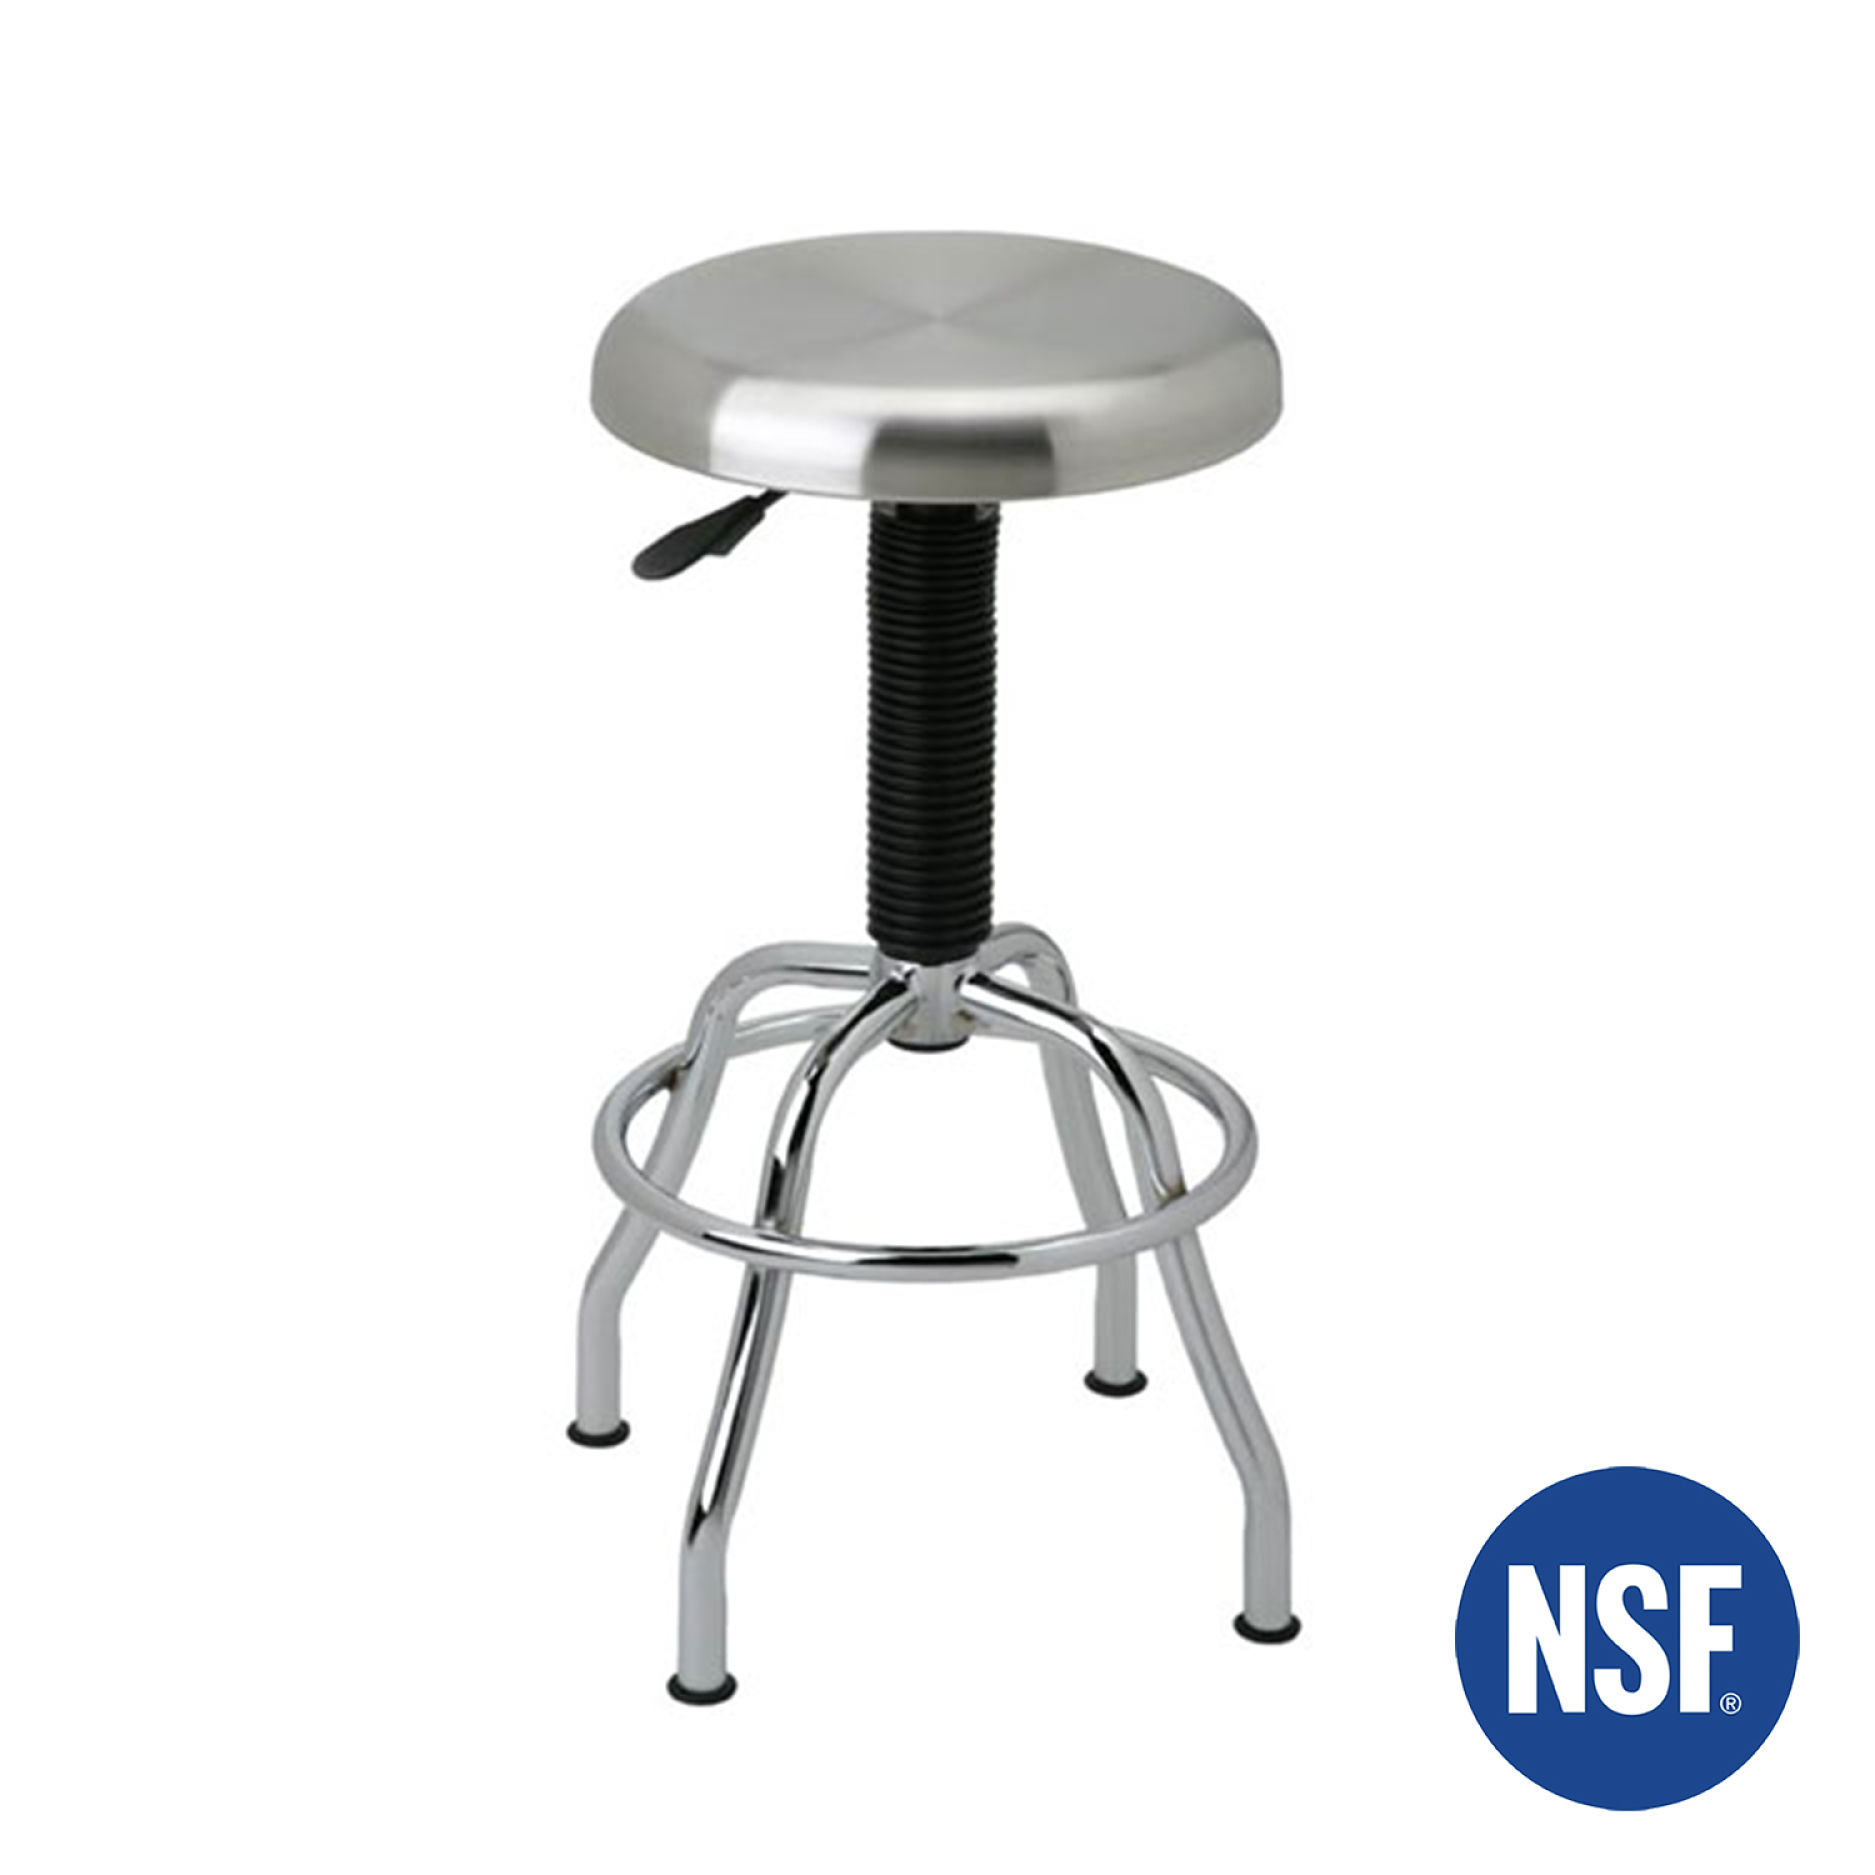 Stainless Steel Pneumatic Work Stool